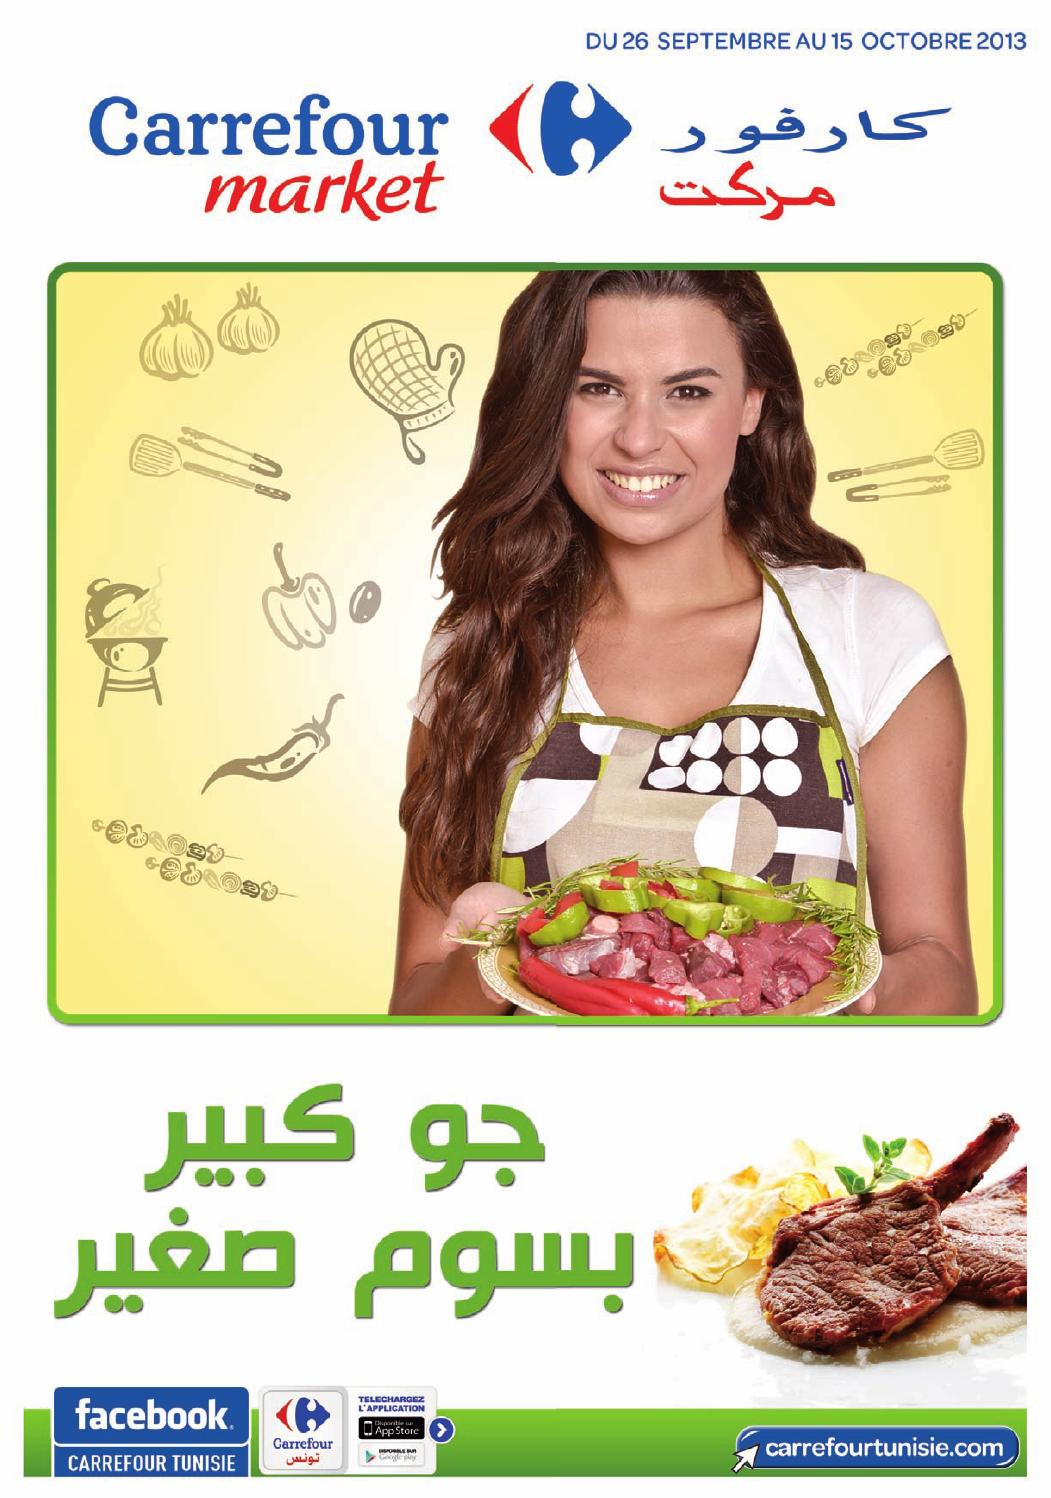 catalogue carrefour market quot aid el khebir quot 2013 by carrefour tunisie issuu